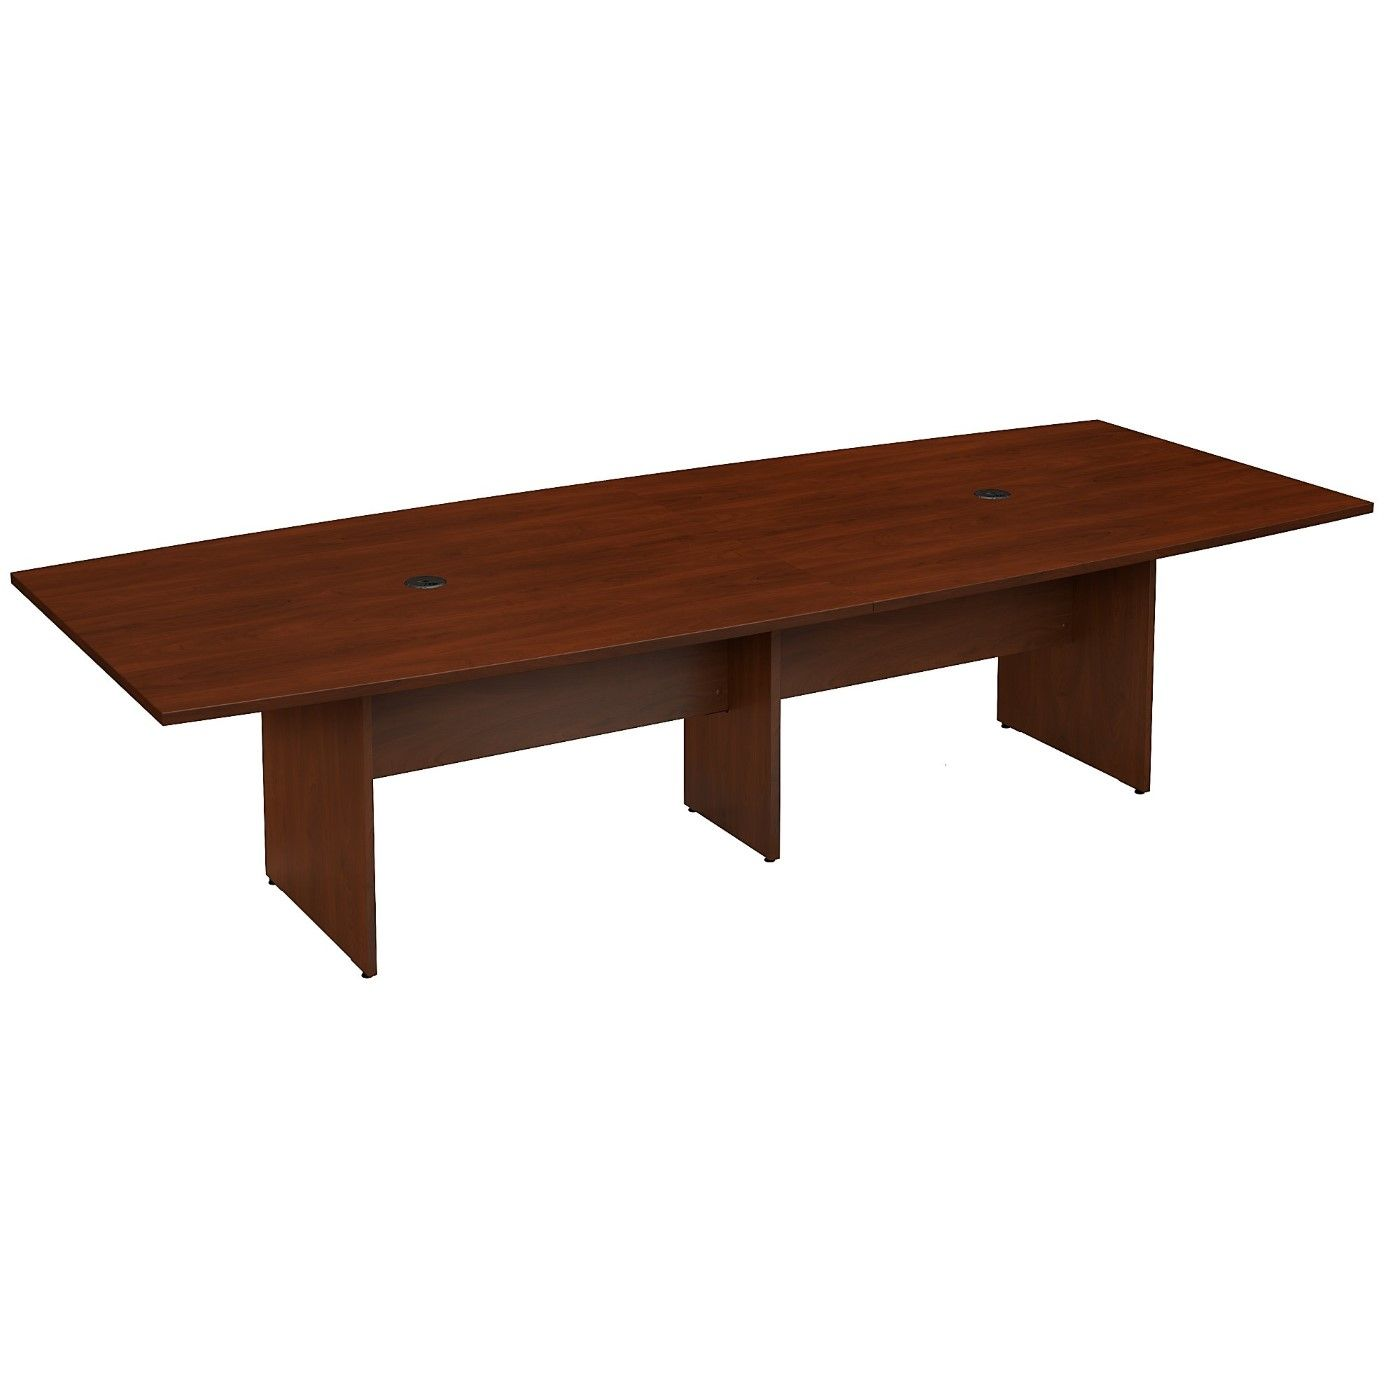 BUSH BUSINESS FURNITURE 120W X 48D BOAT SHAPED CONFERENCE TABLE WITH WOOD BASE. FREE SHIPPING